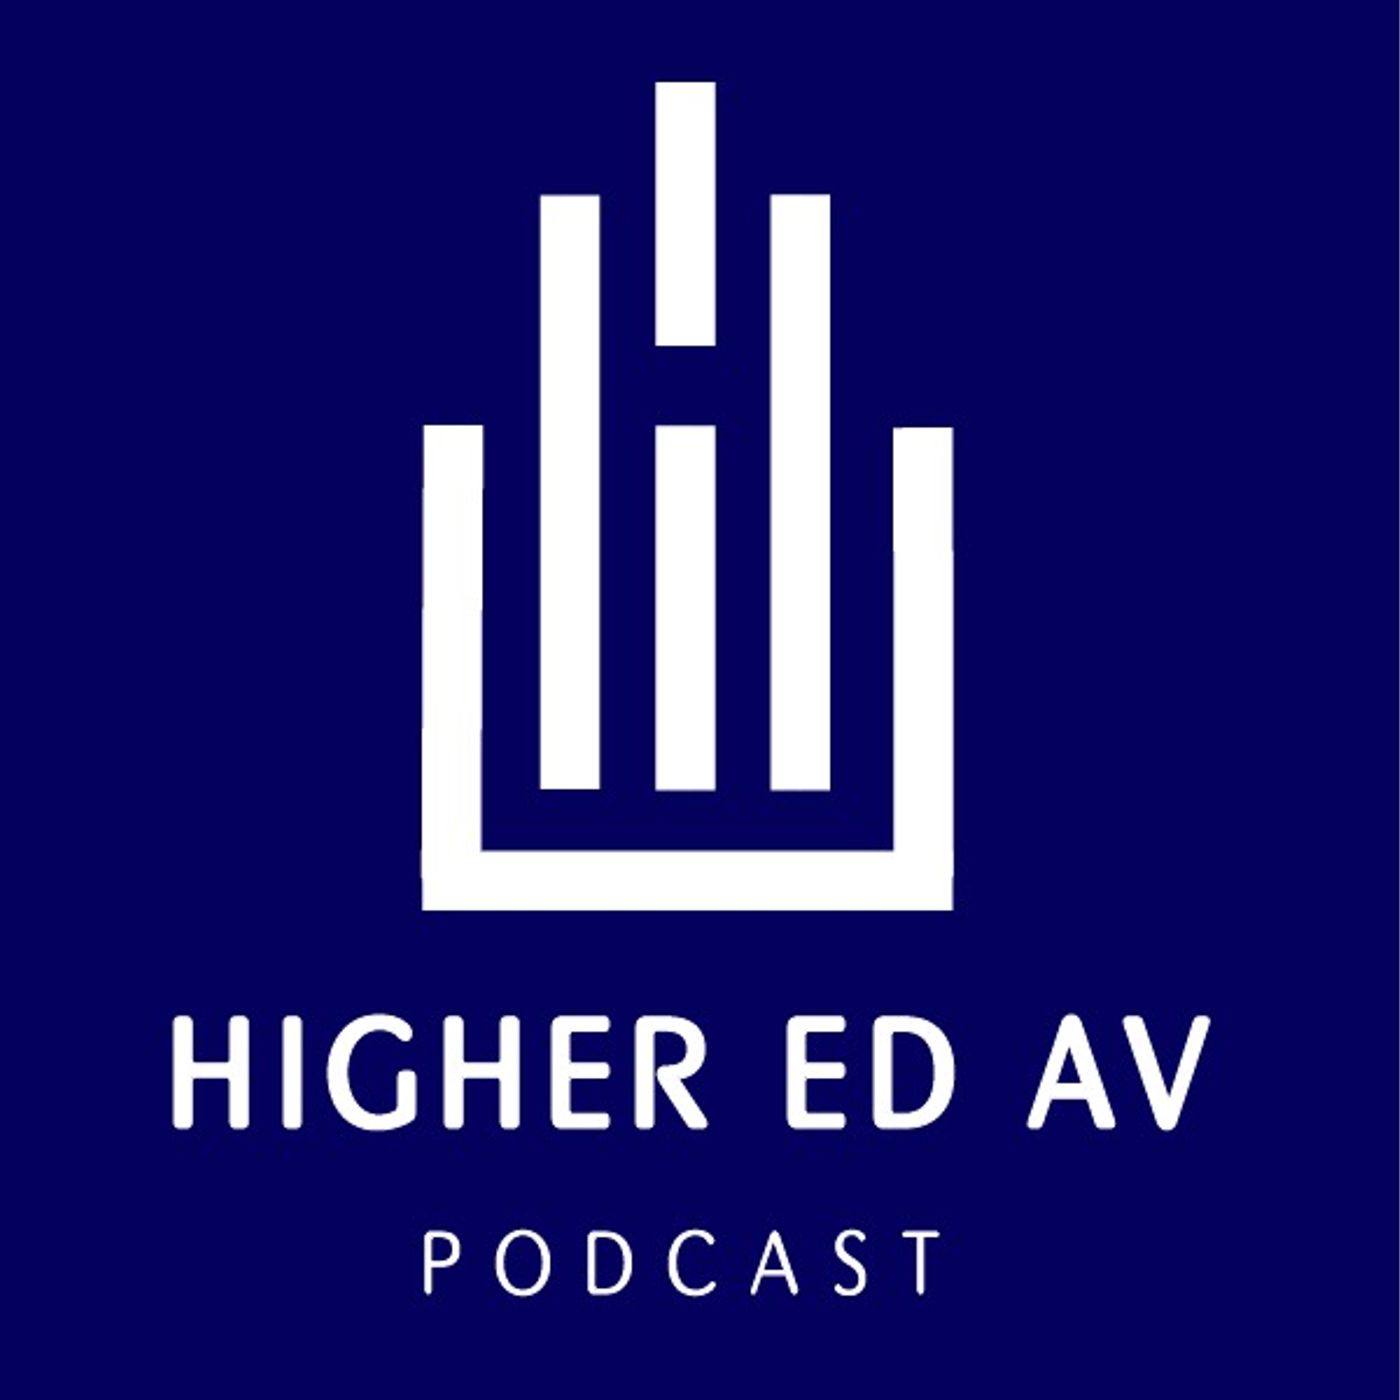 142: Dave Labuskes, Chief Executive Officer at AVIXA, Discusses the Value of Higher Ed in the AV Industry. Oh, and InfoComm